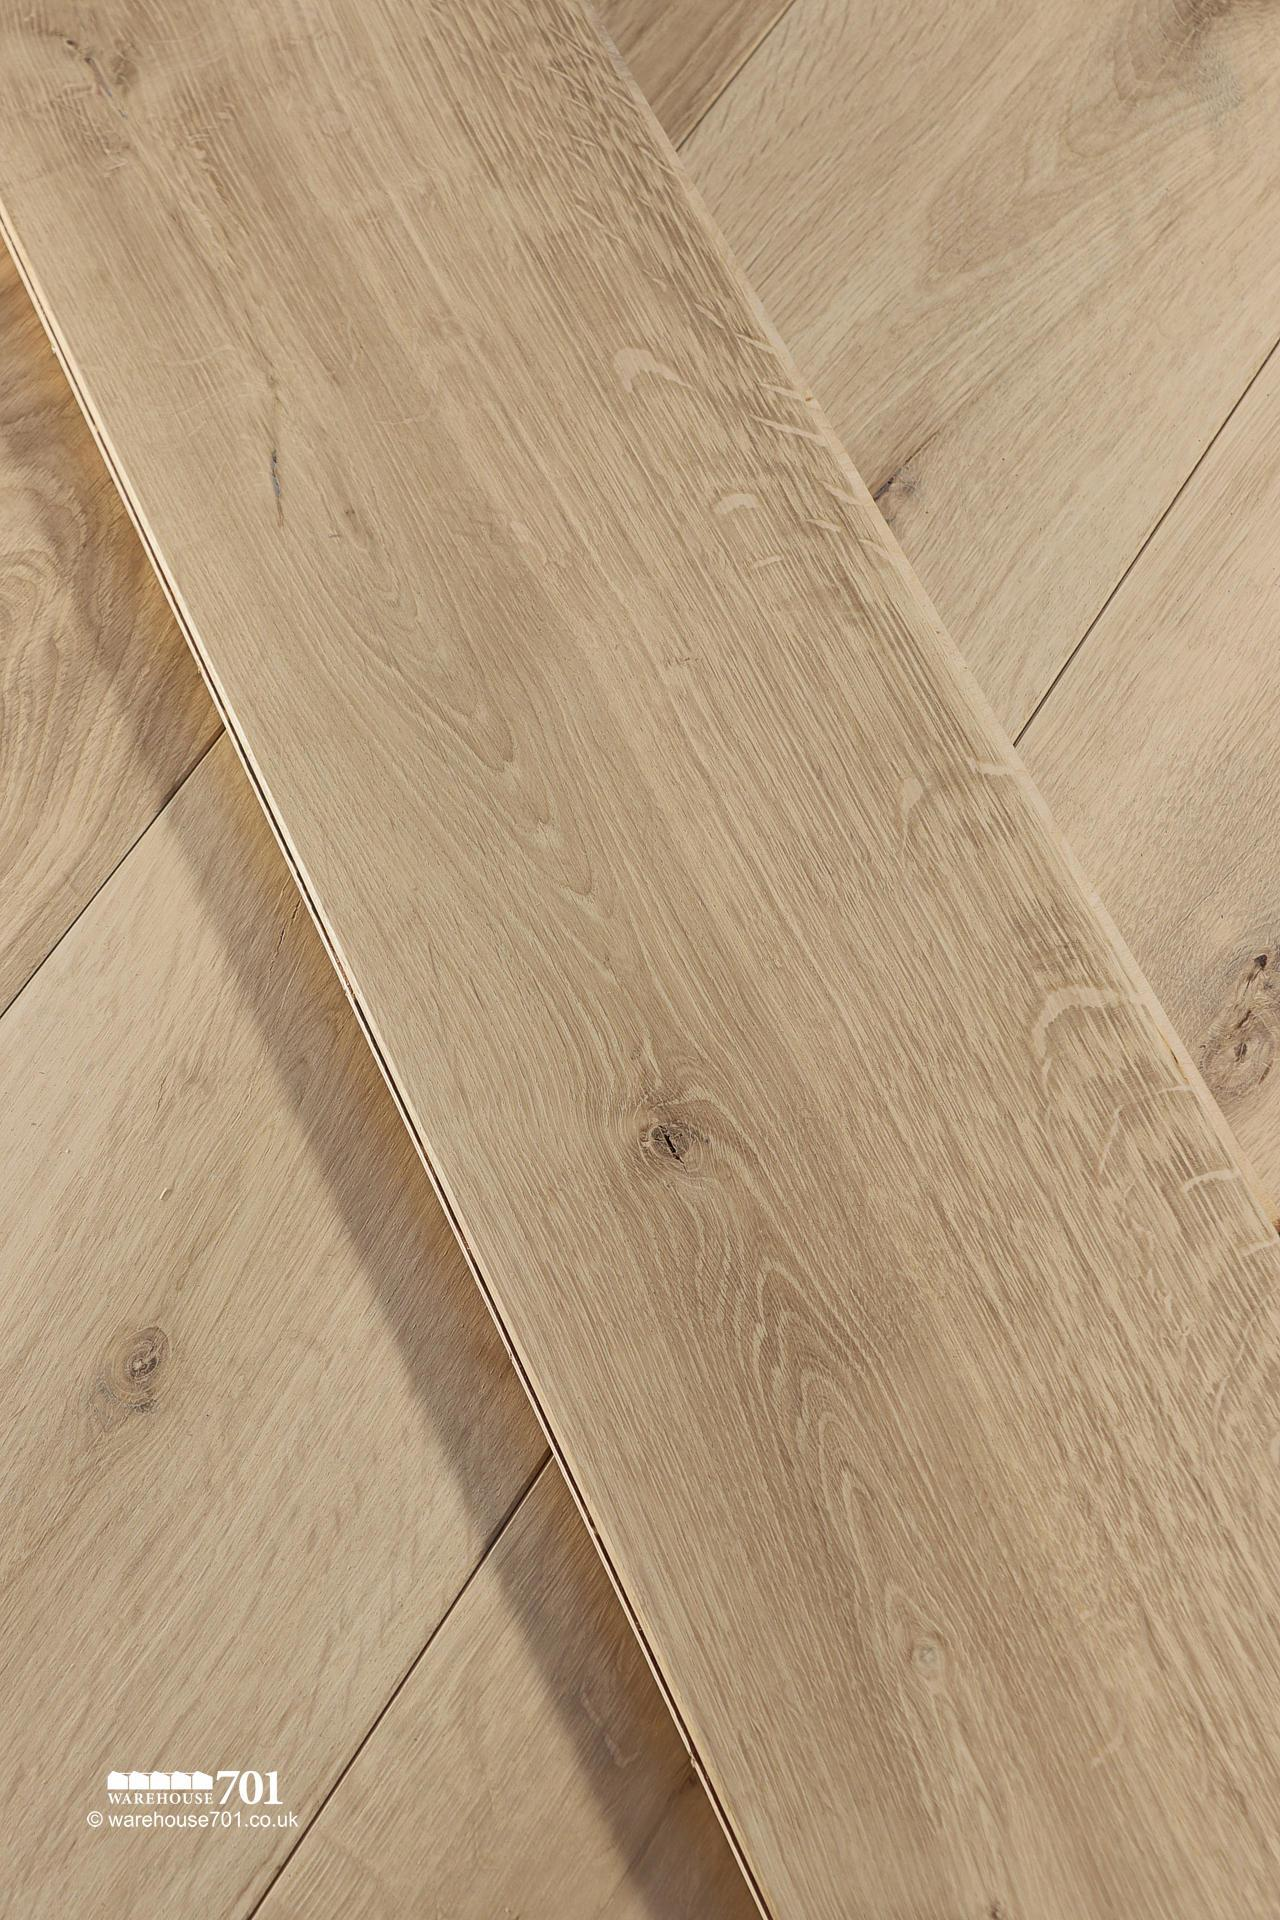 New 'Wessex' Engineered Natural Oak Wood Flooring #2